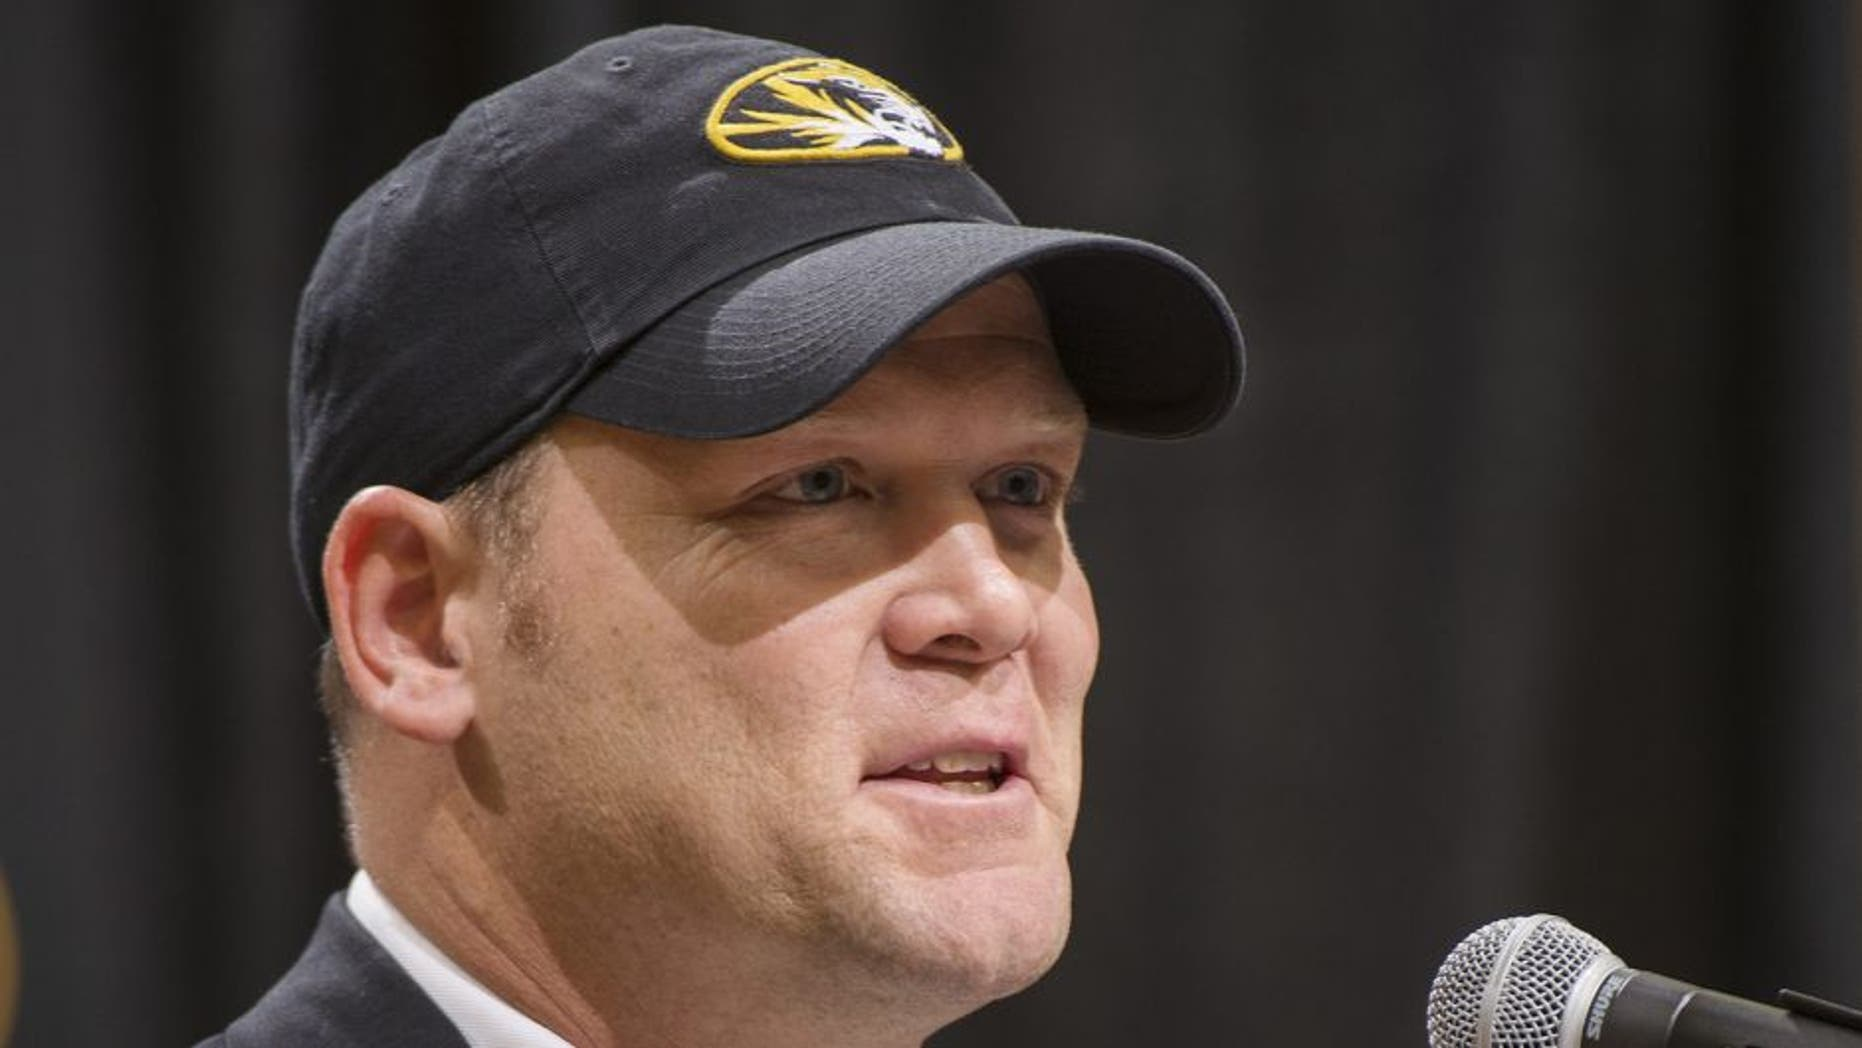 Barry Odom talks to a crowd gathered at Mizzou Arena as he is announced as the new head coach for the Missouri NCAA college football team Friday, Dec. 4, 2015, in Columbia, Mo. (AP Photo/L.G. Patterson)